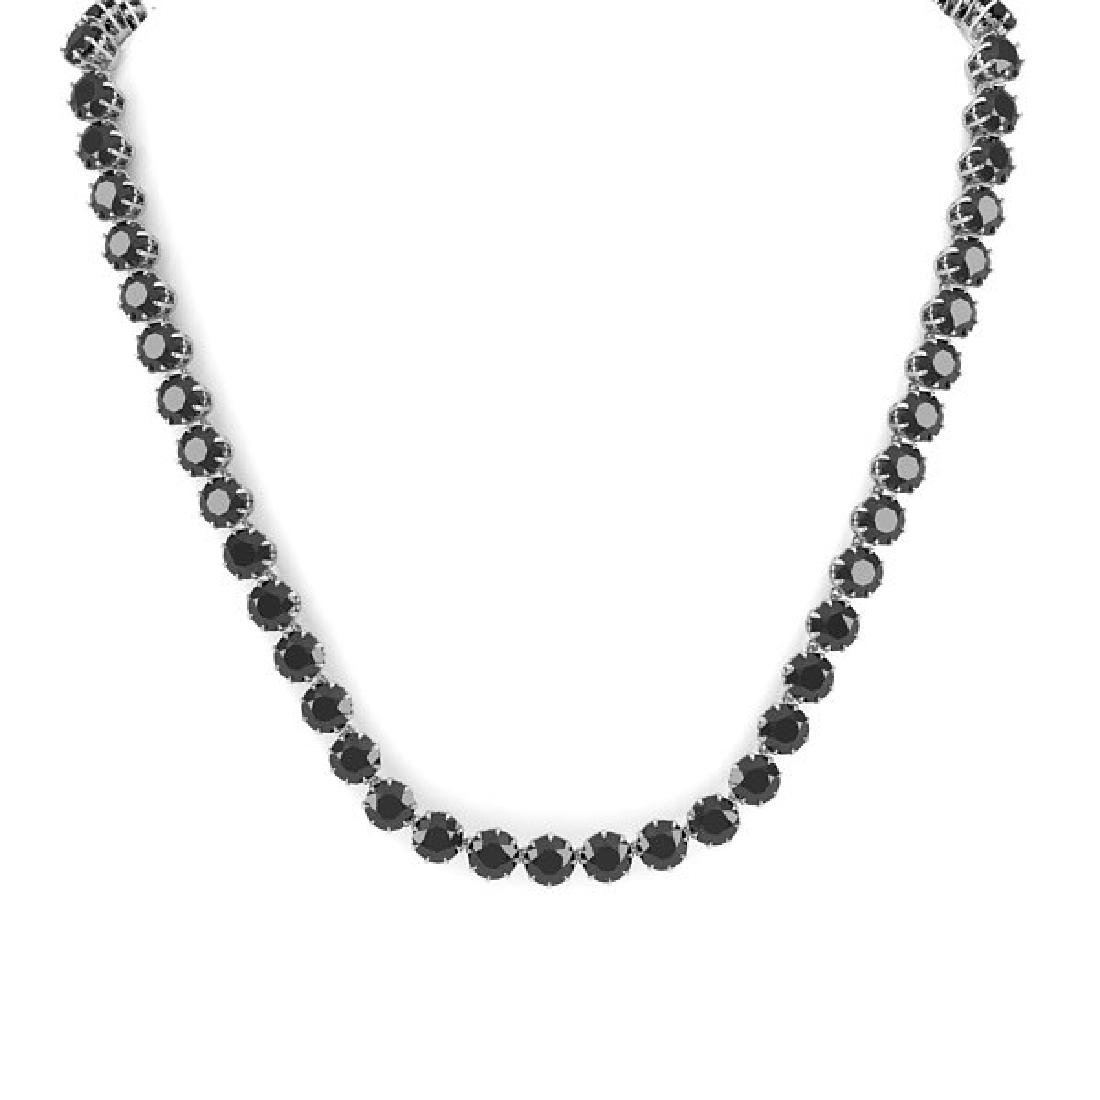 54 CTW Certified Black VS Diamond Necklace 18K White - 2